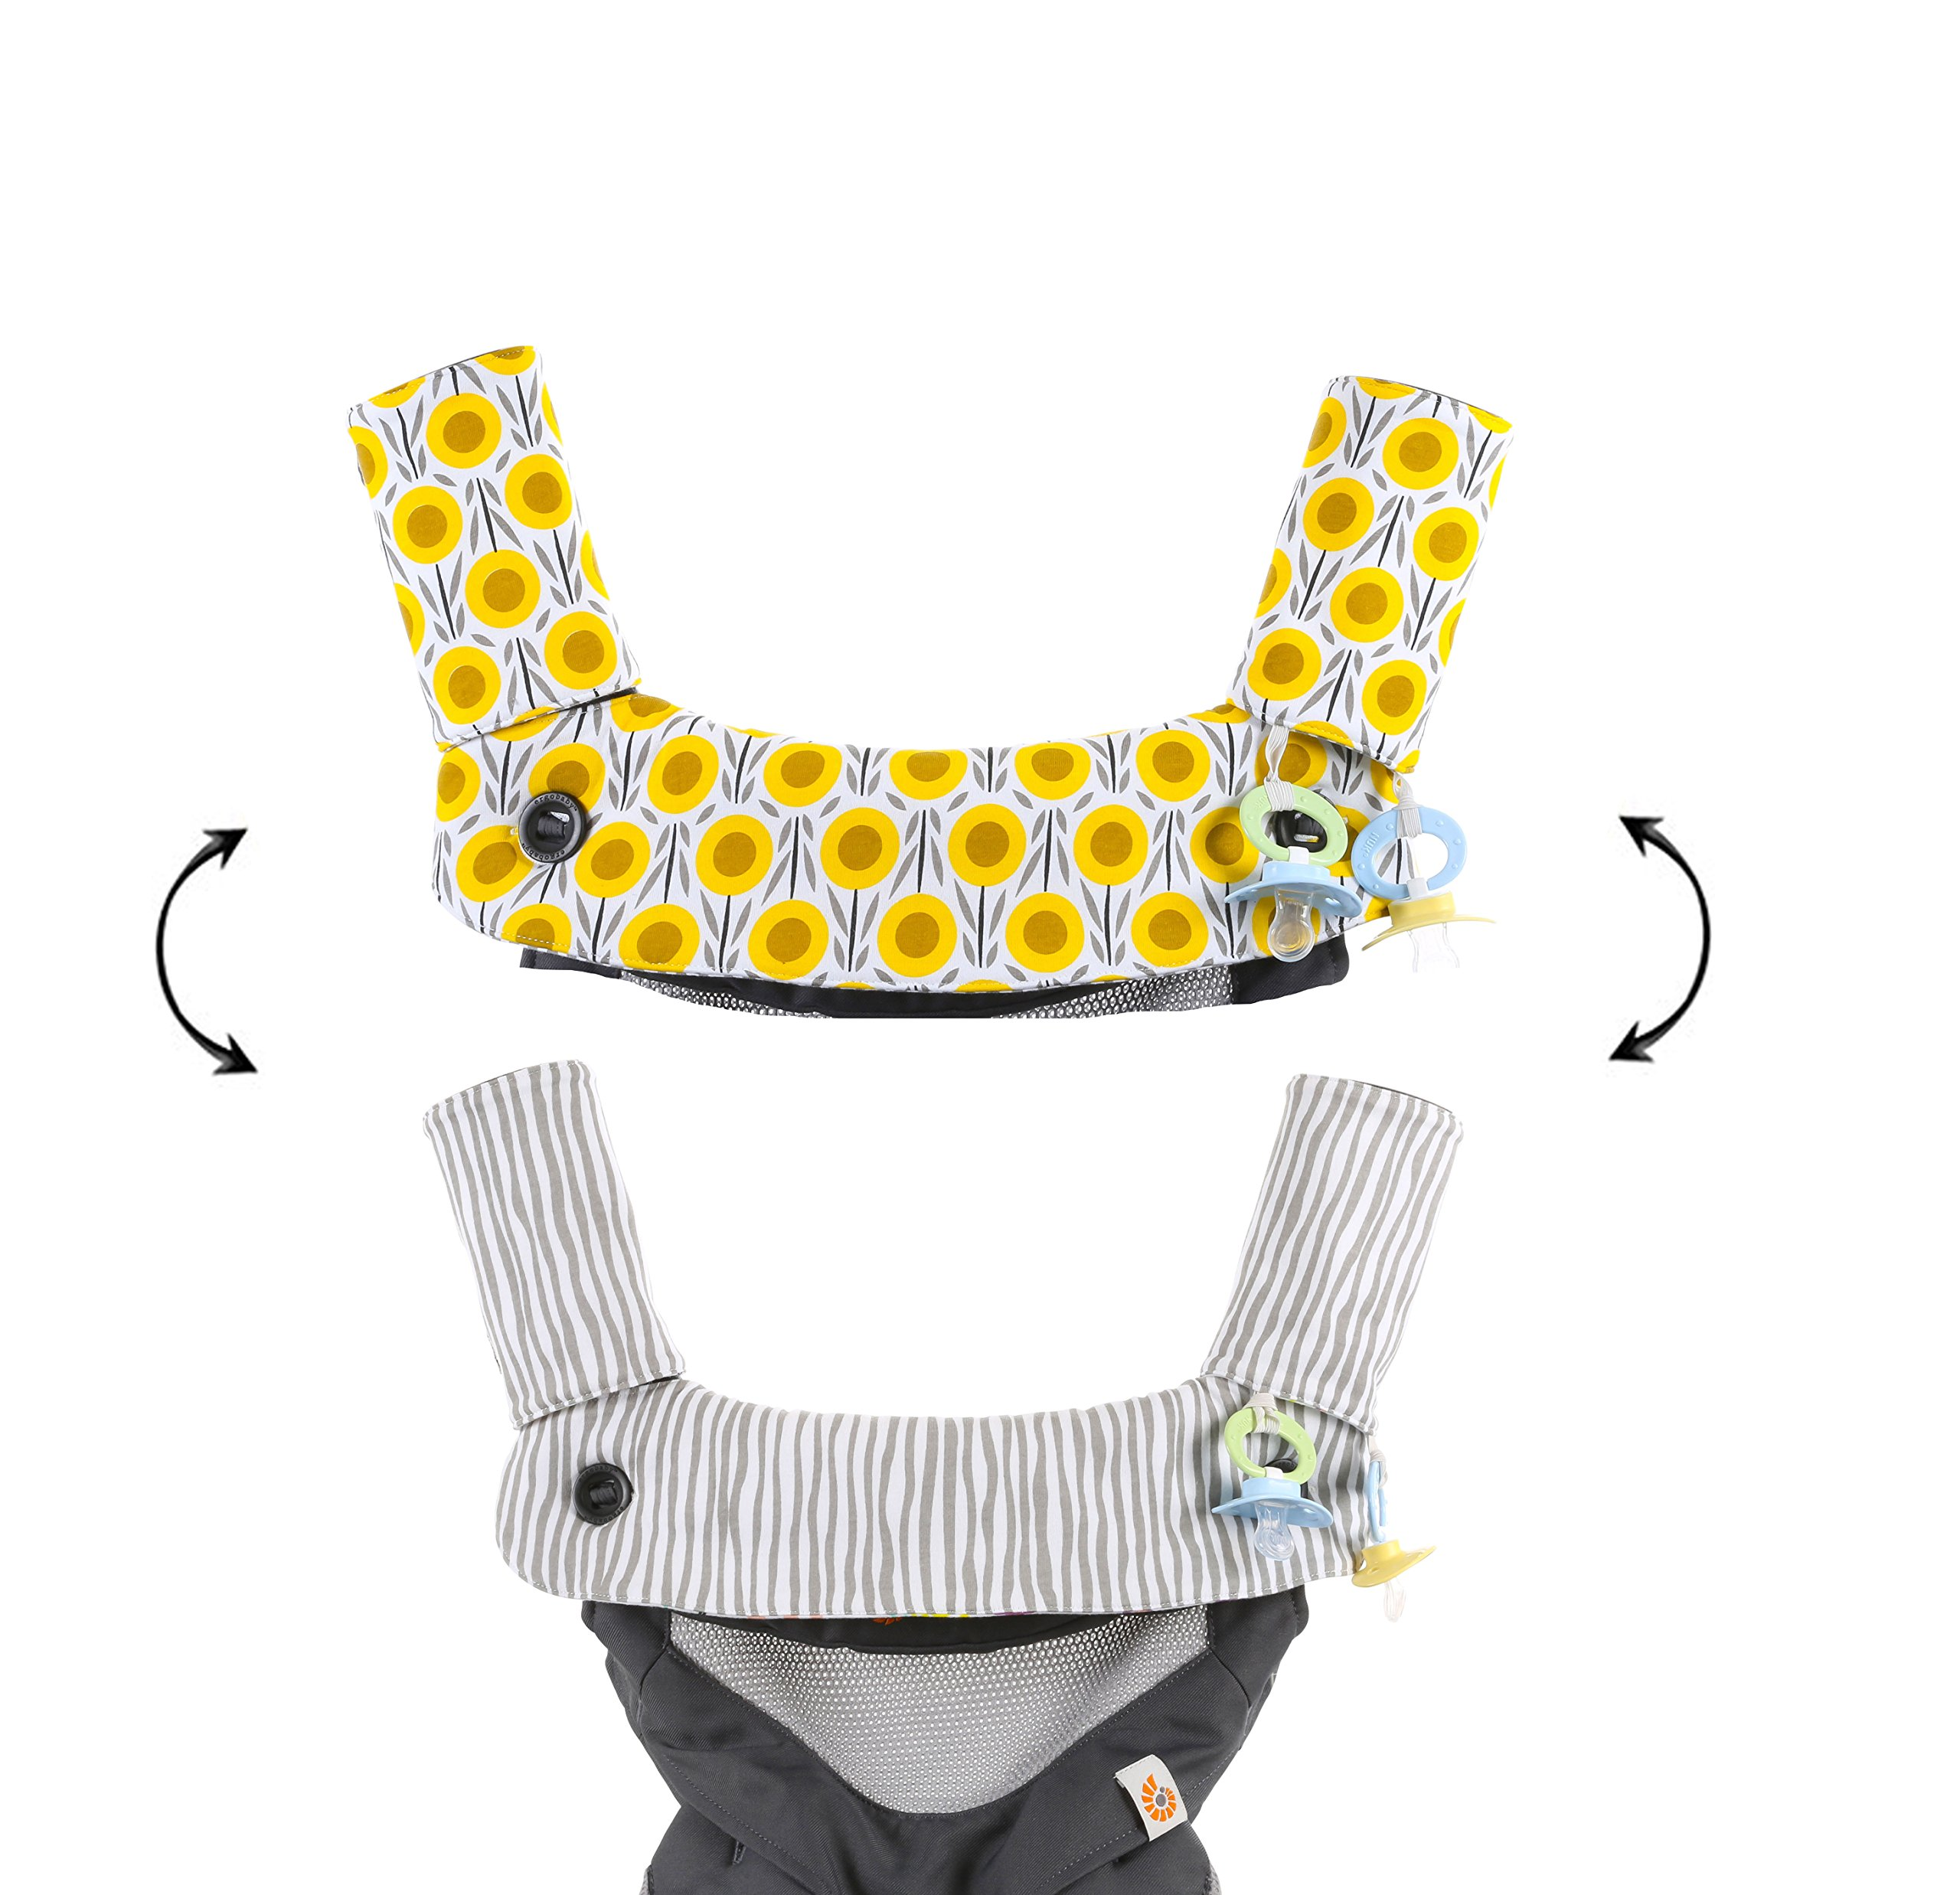 Premium Drool and Teething Reversible Cotton Pad | Fits Ergobaby Four Position 360 + Most Baby Carrier | Sunflower Design | Hypoallergenic | Great Baby Girl Shower Gift by Mila Millie